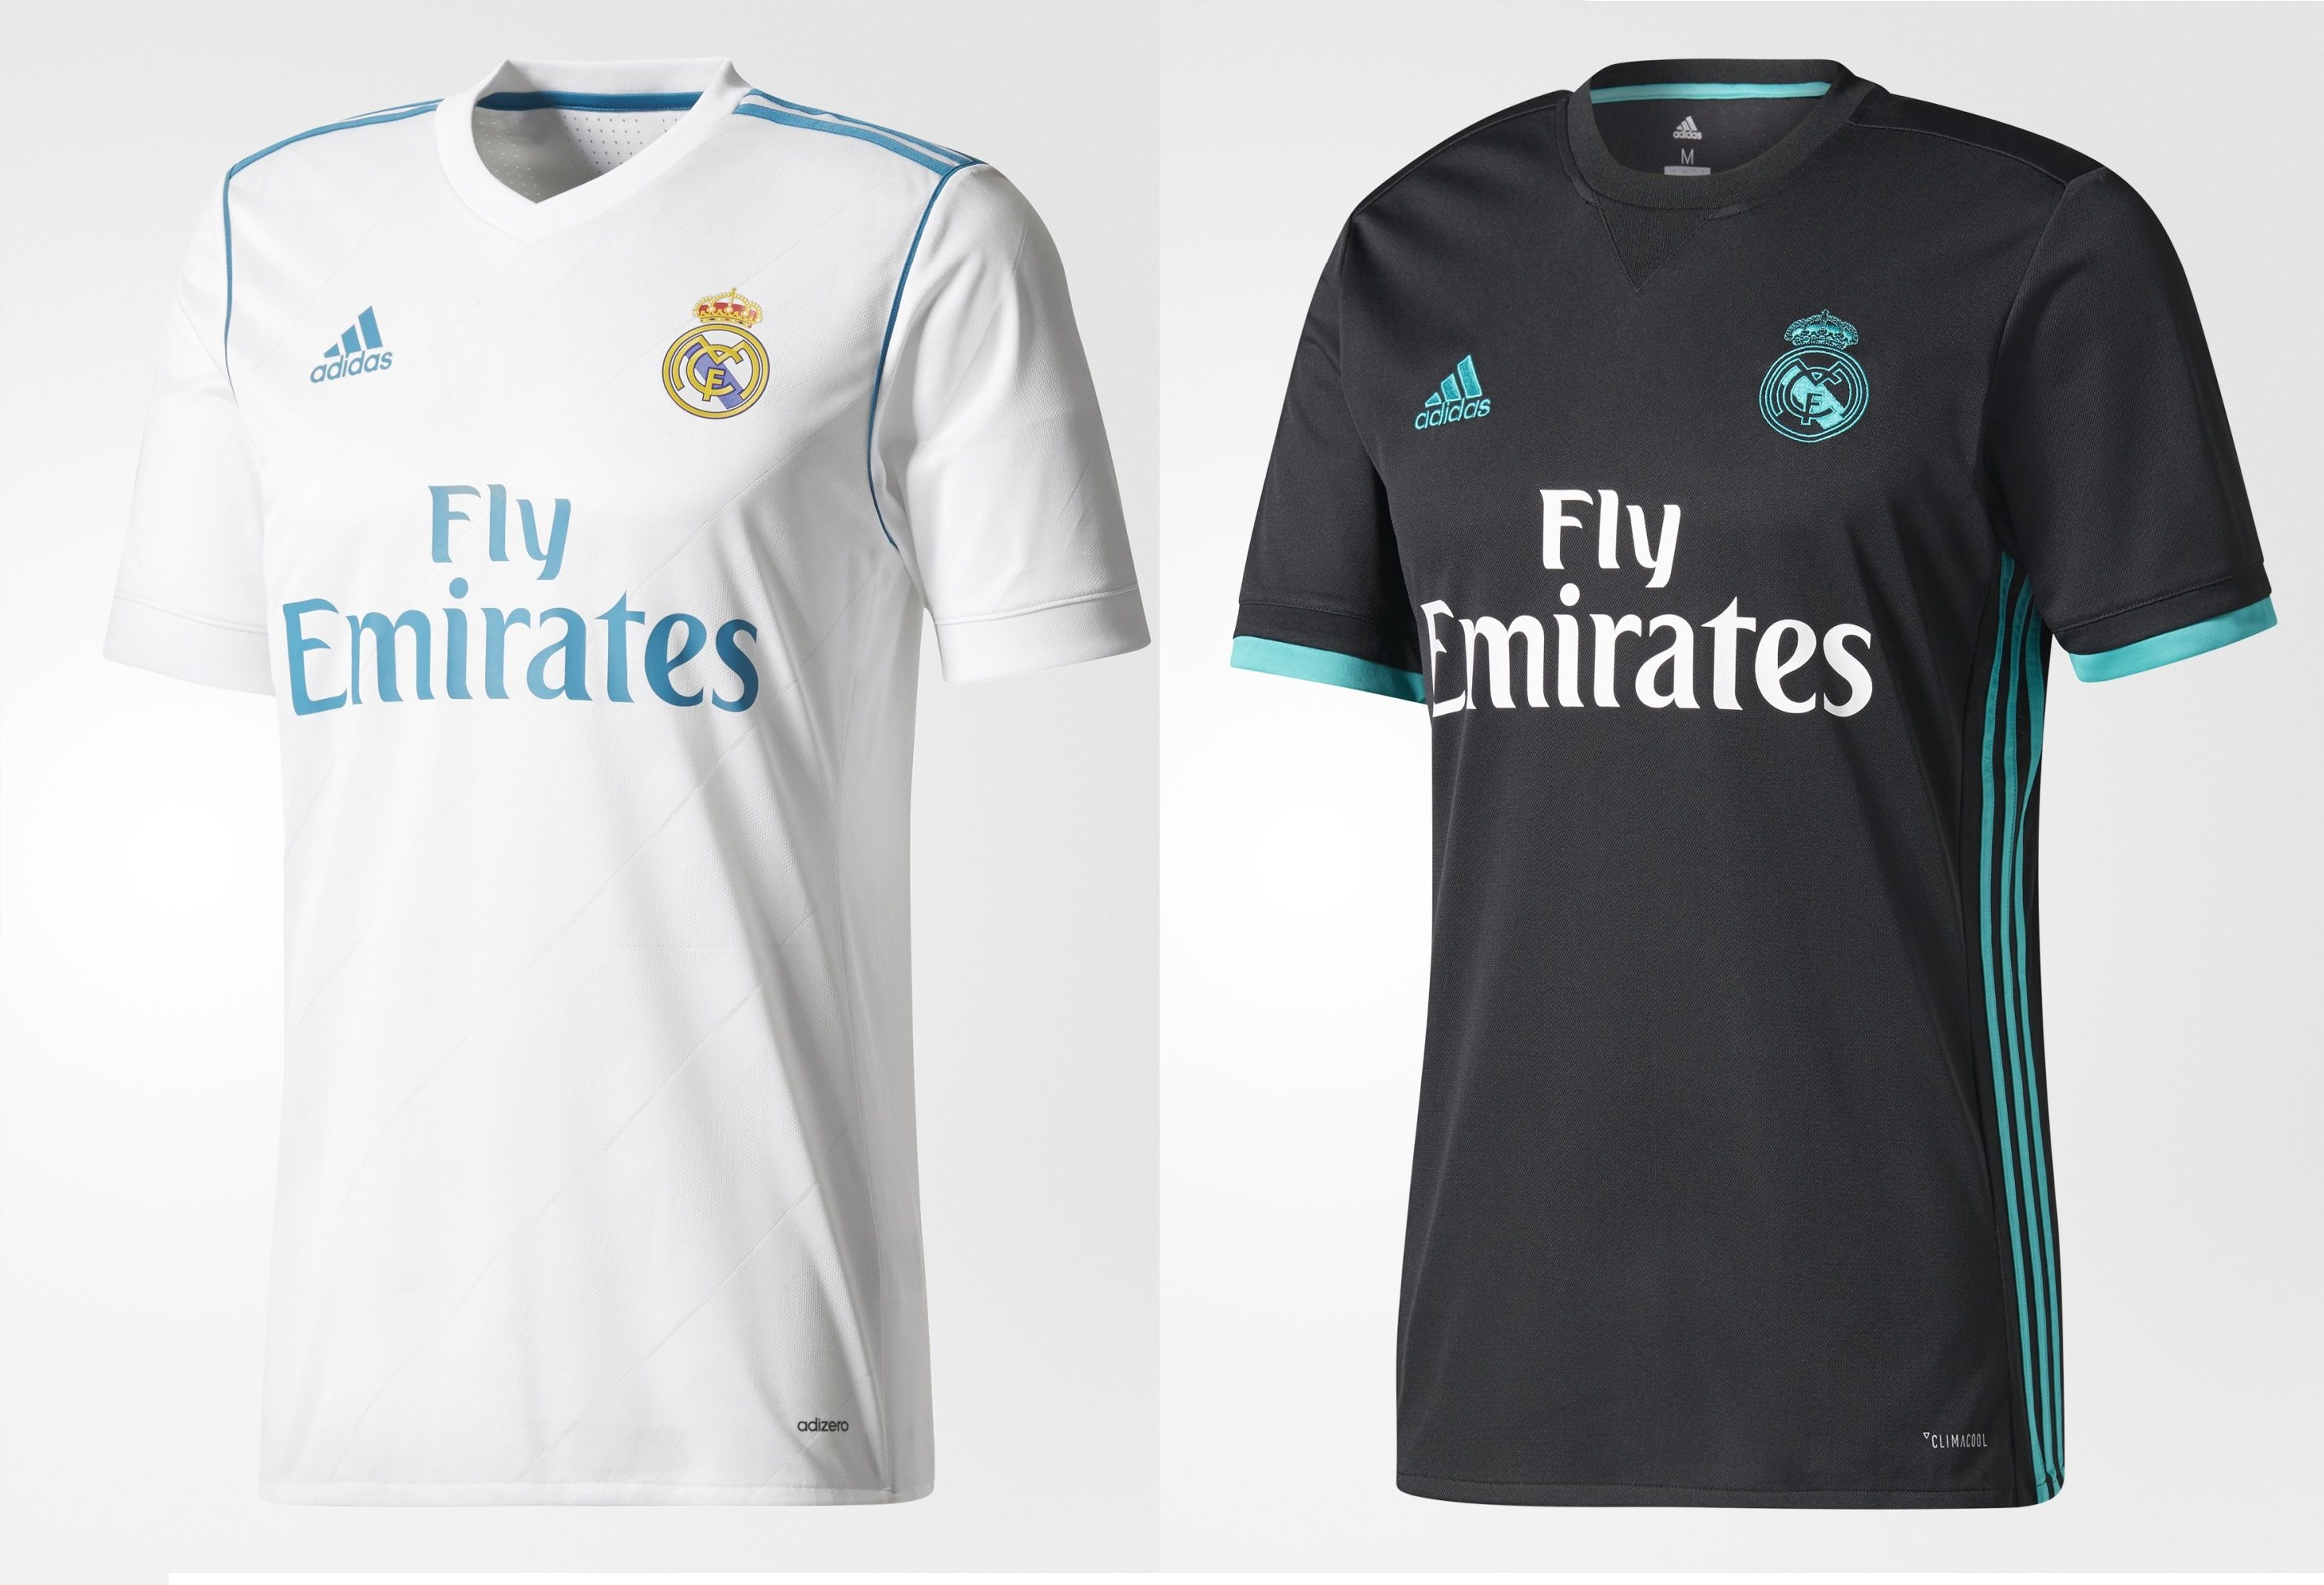 Camisetas del Real Madrid de la temporada 2017 2018 (ADIDAS). a5522bee3c6bf